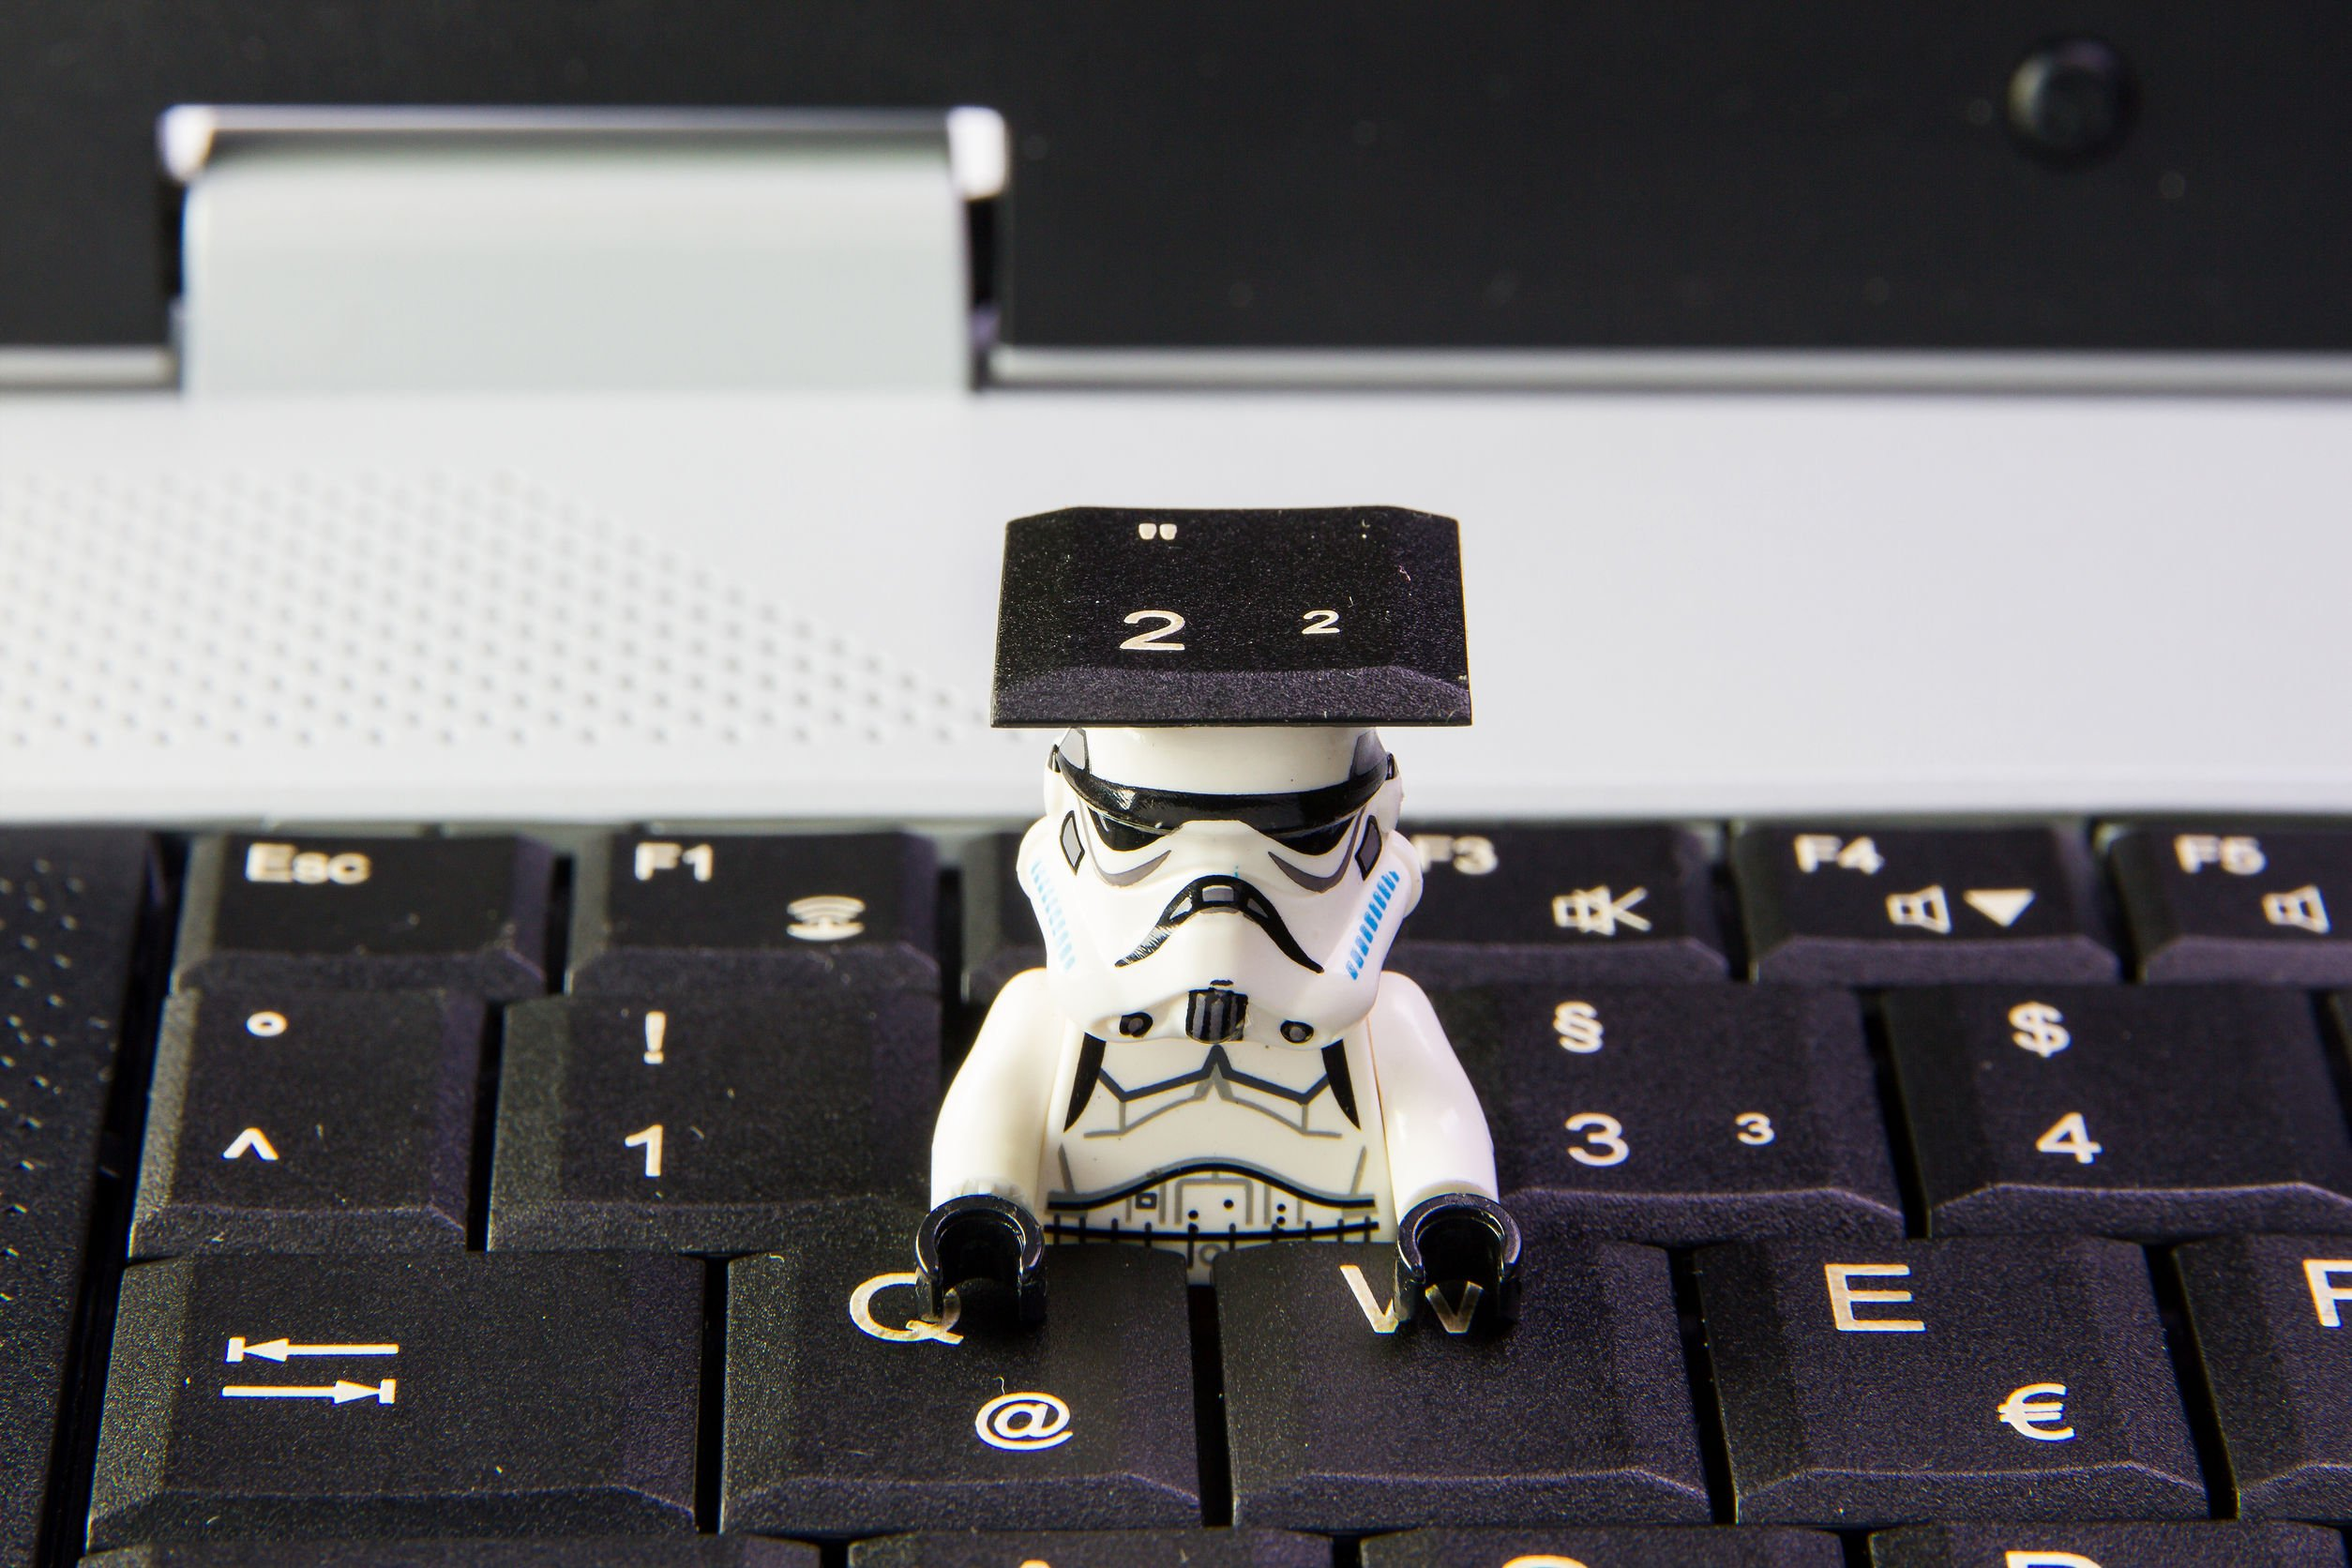 Lego star wars stormtrooper a sneak is key keyboard notebook.